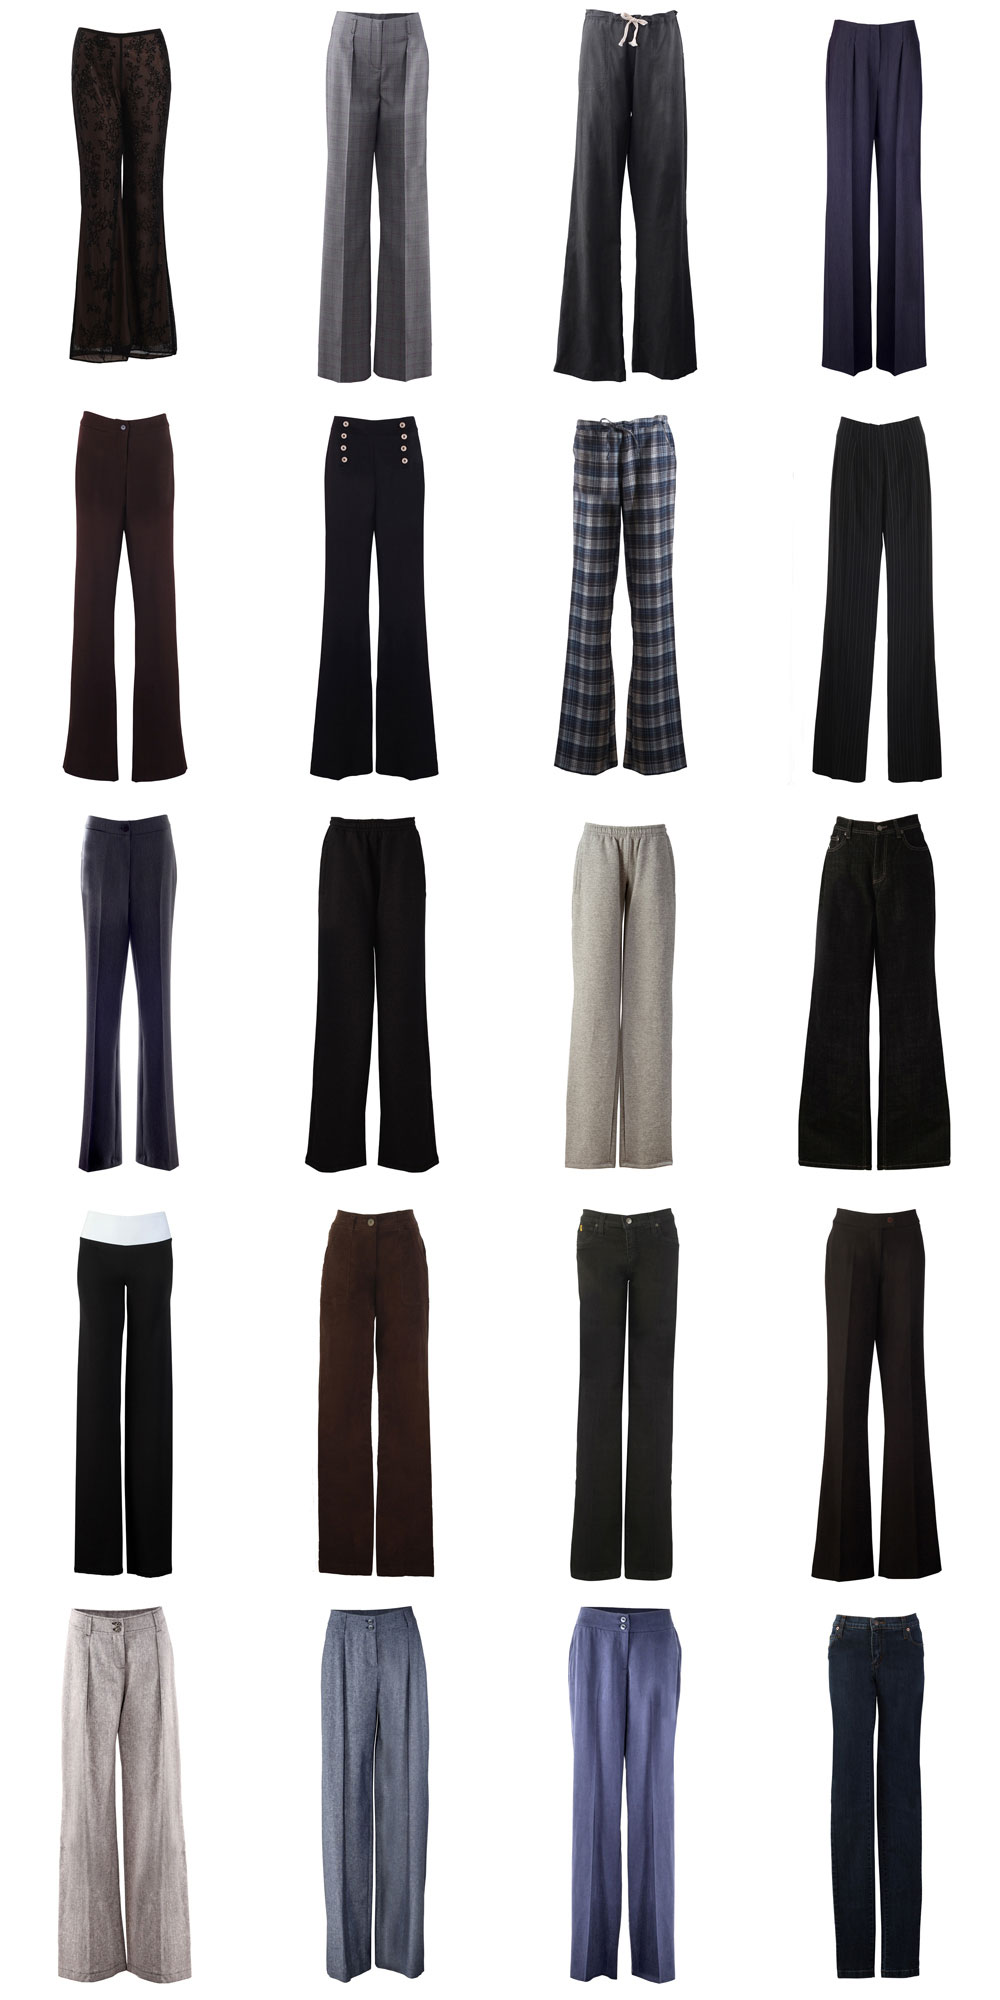 Photos of Various Trousers and Pants